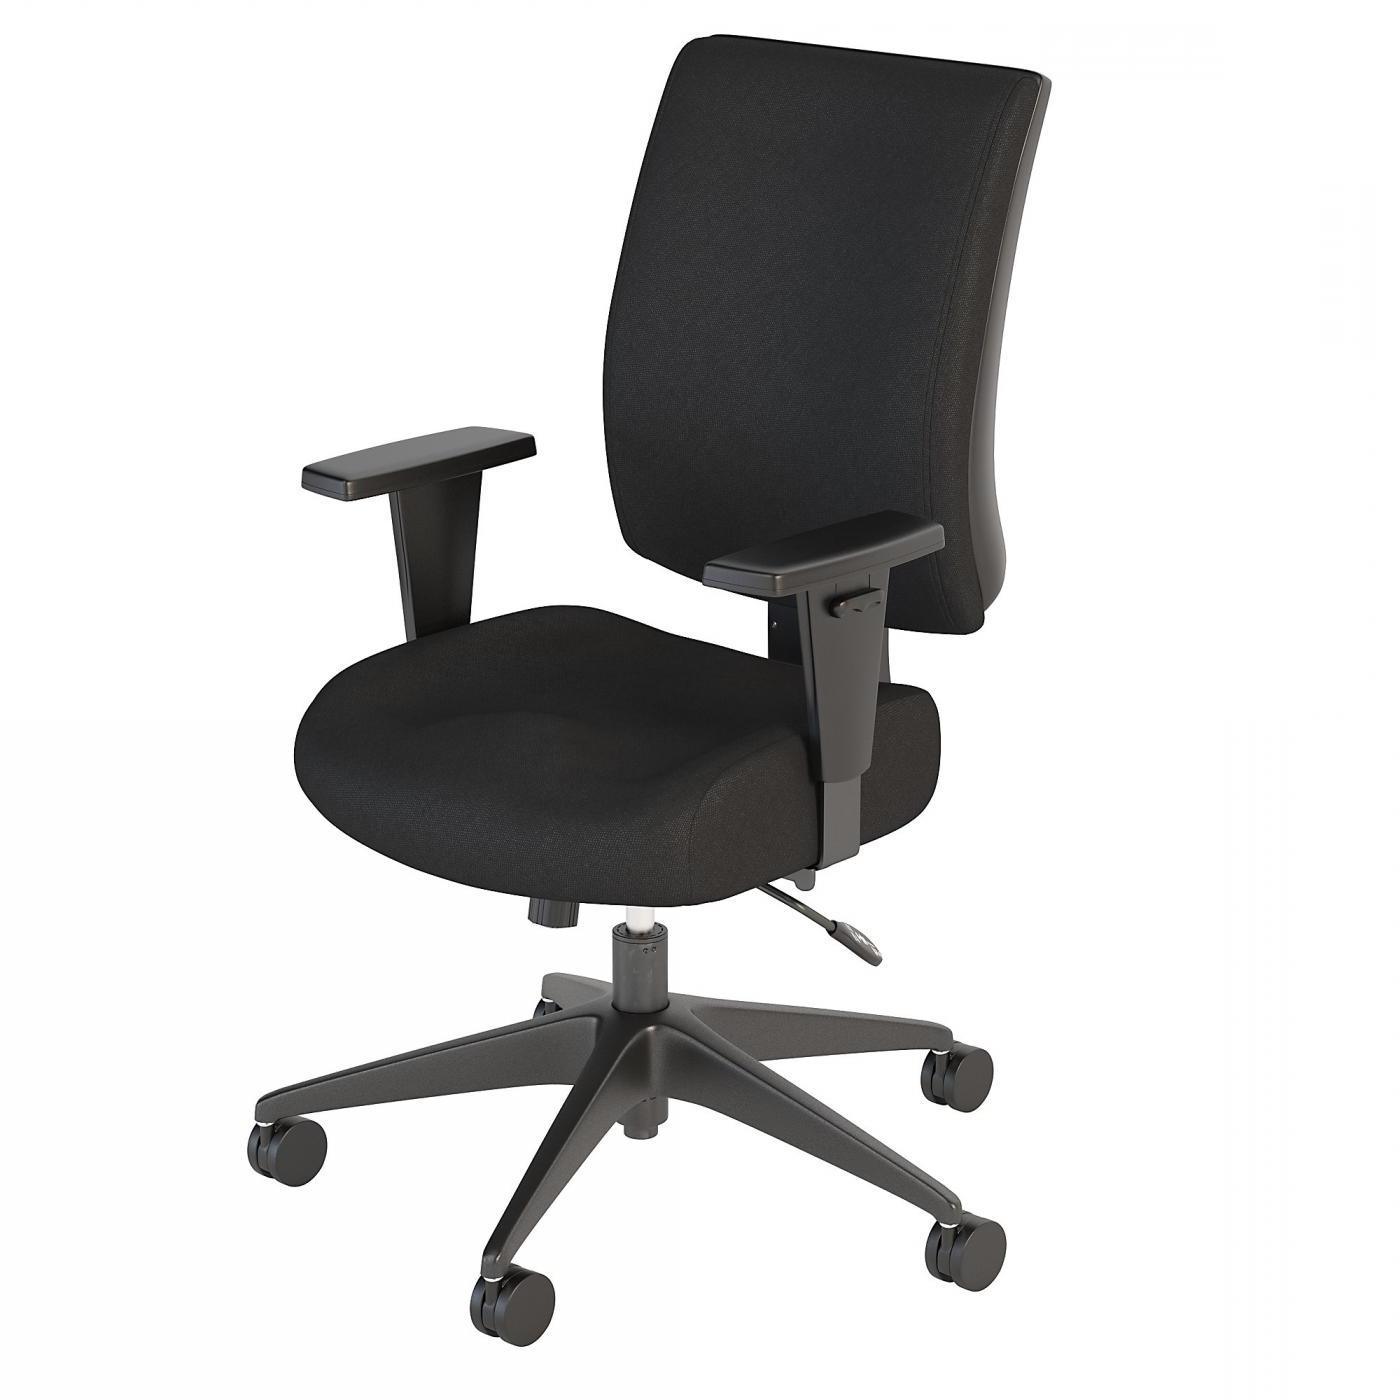 <font color=#c60><b>BUSH BUSINESS FURNITURE ACCORD MID BACK MULTIFUNCTION OFFICE CHAIR. FREE SHIPPING</font></b> </font></b></font></b>